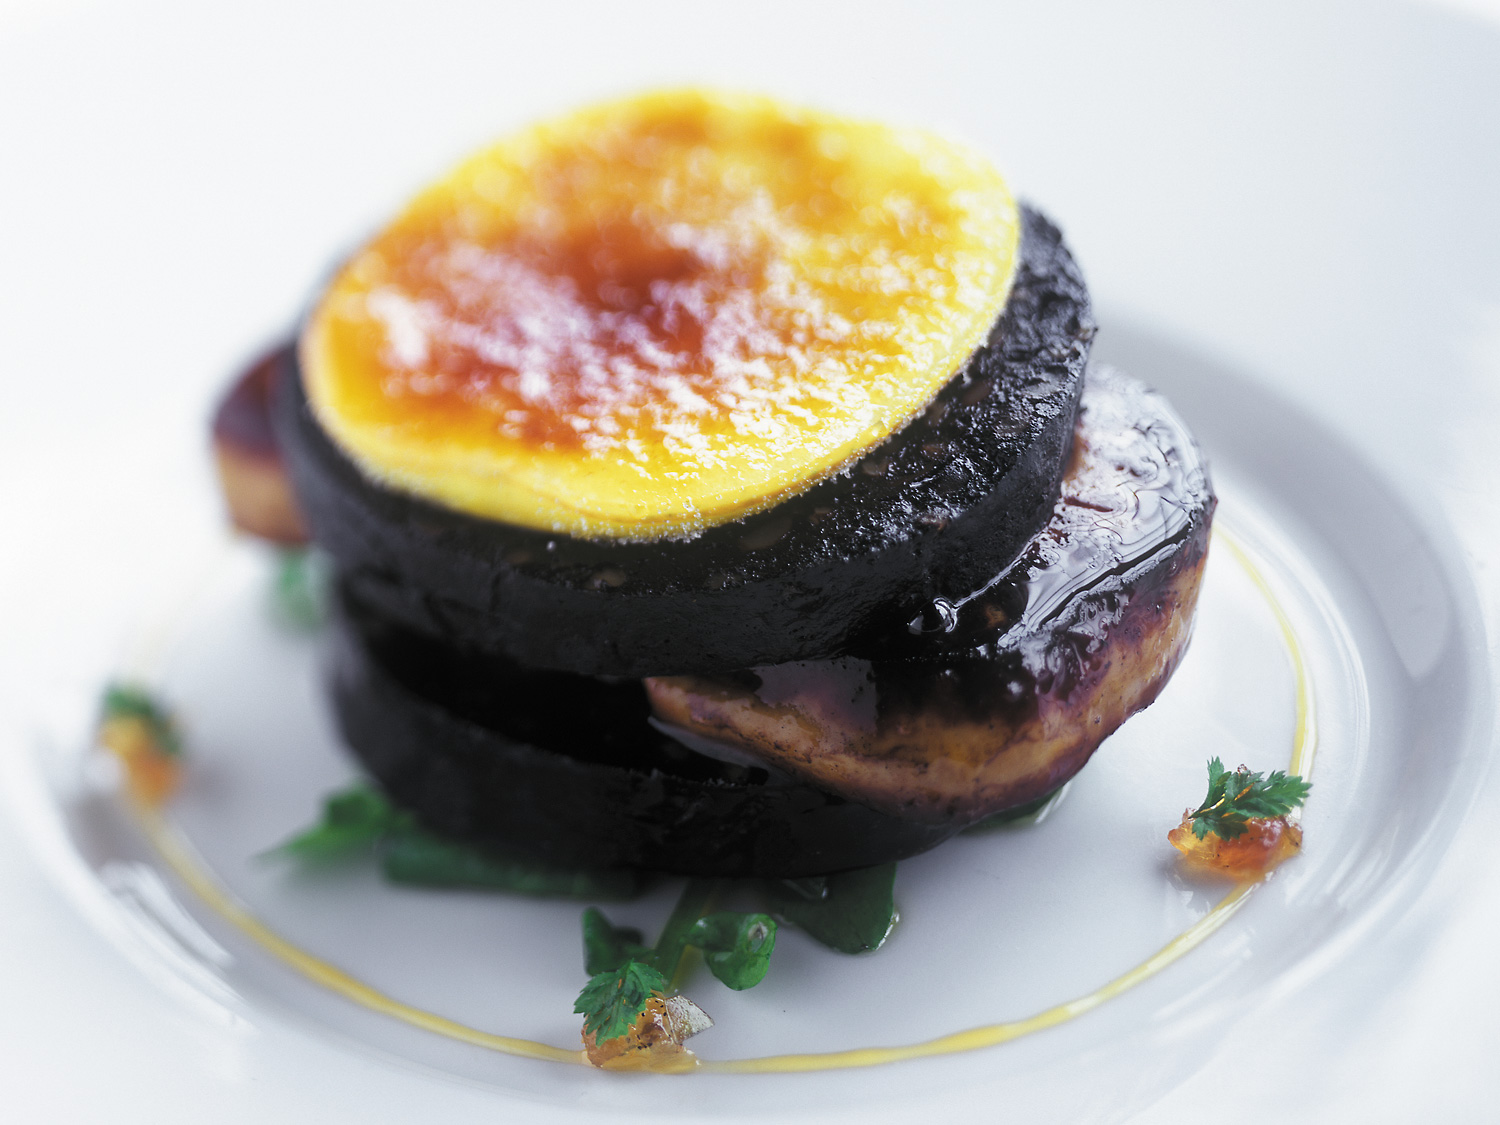 Andrew-pern-black-pudding-and-foie-gras-8.jpg